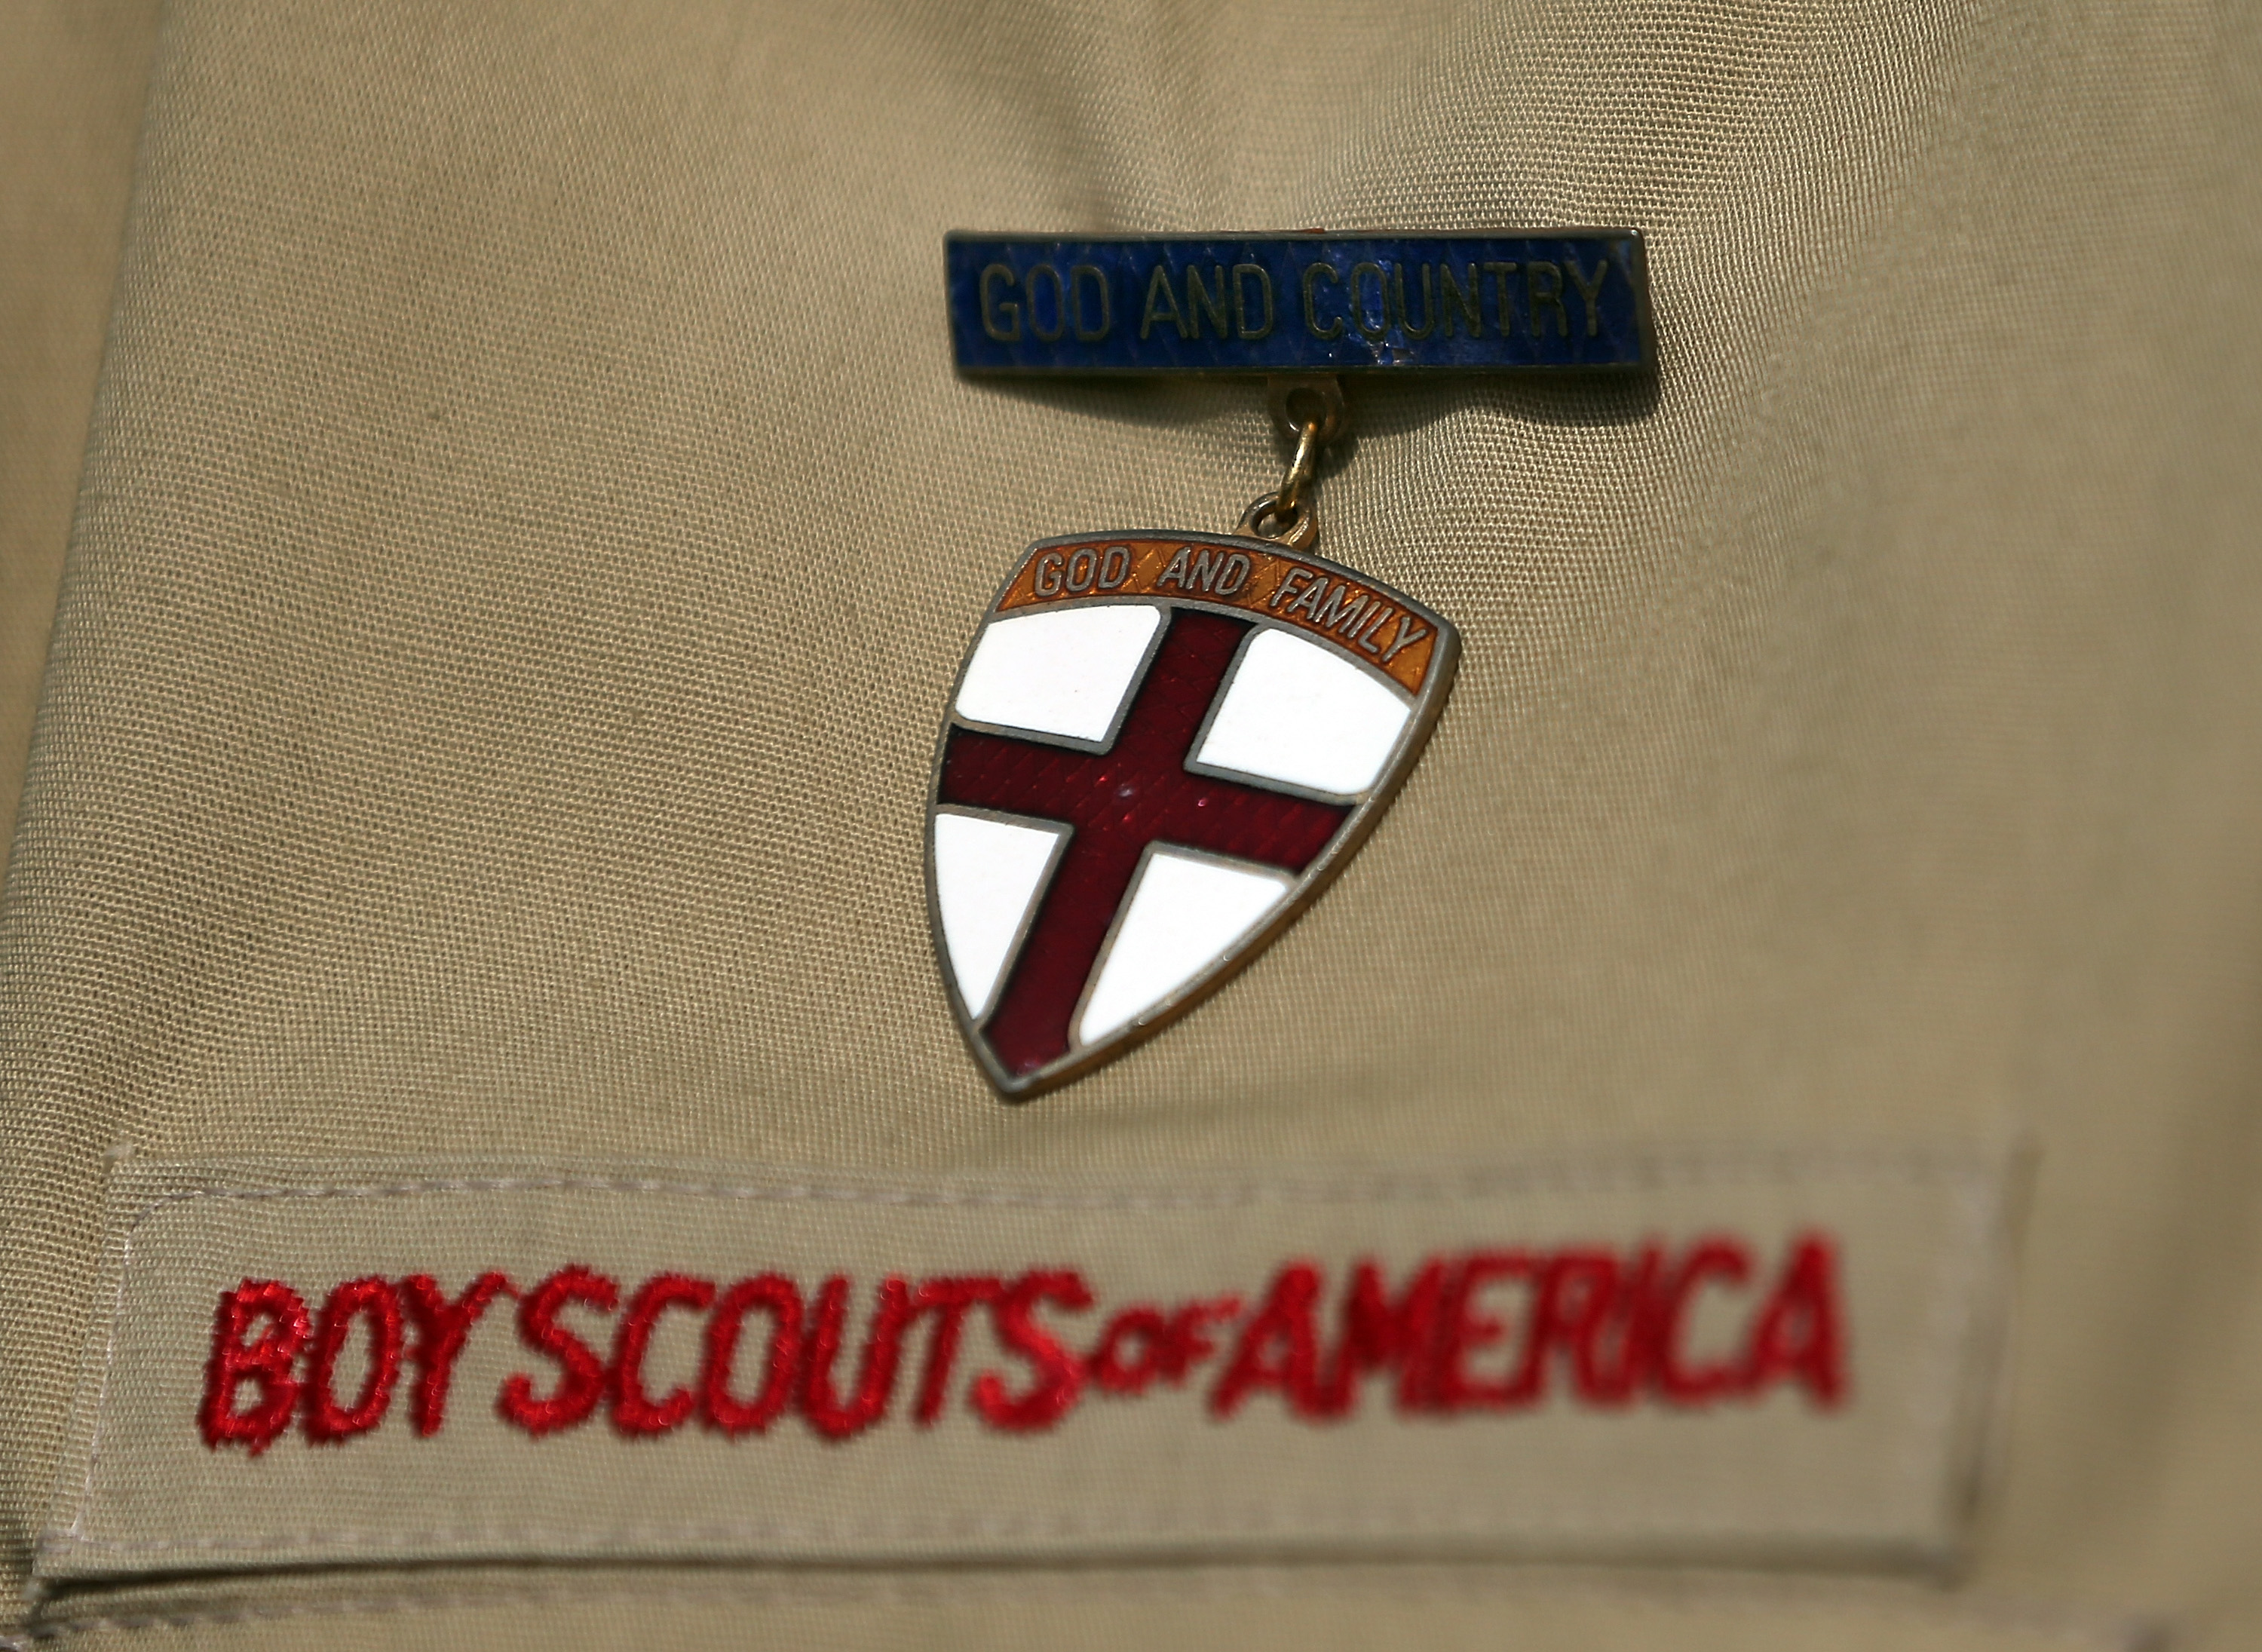 A detail view of a Boy Scout uniform.